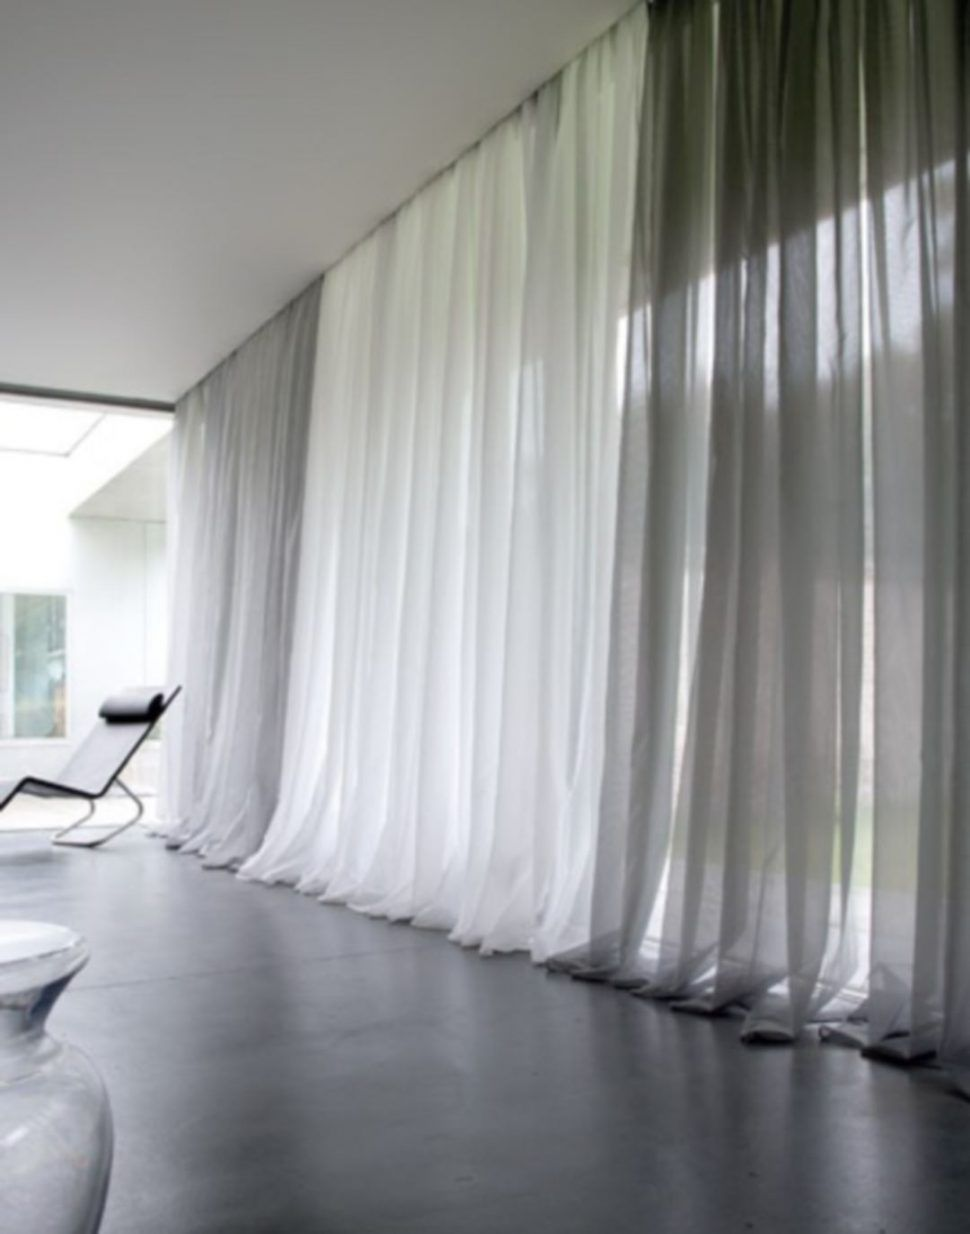 Wall Drapes Decoration:curtain Poles And Rails Bay Window Curtain Pole